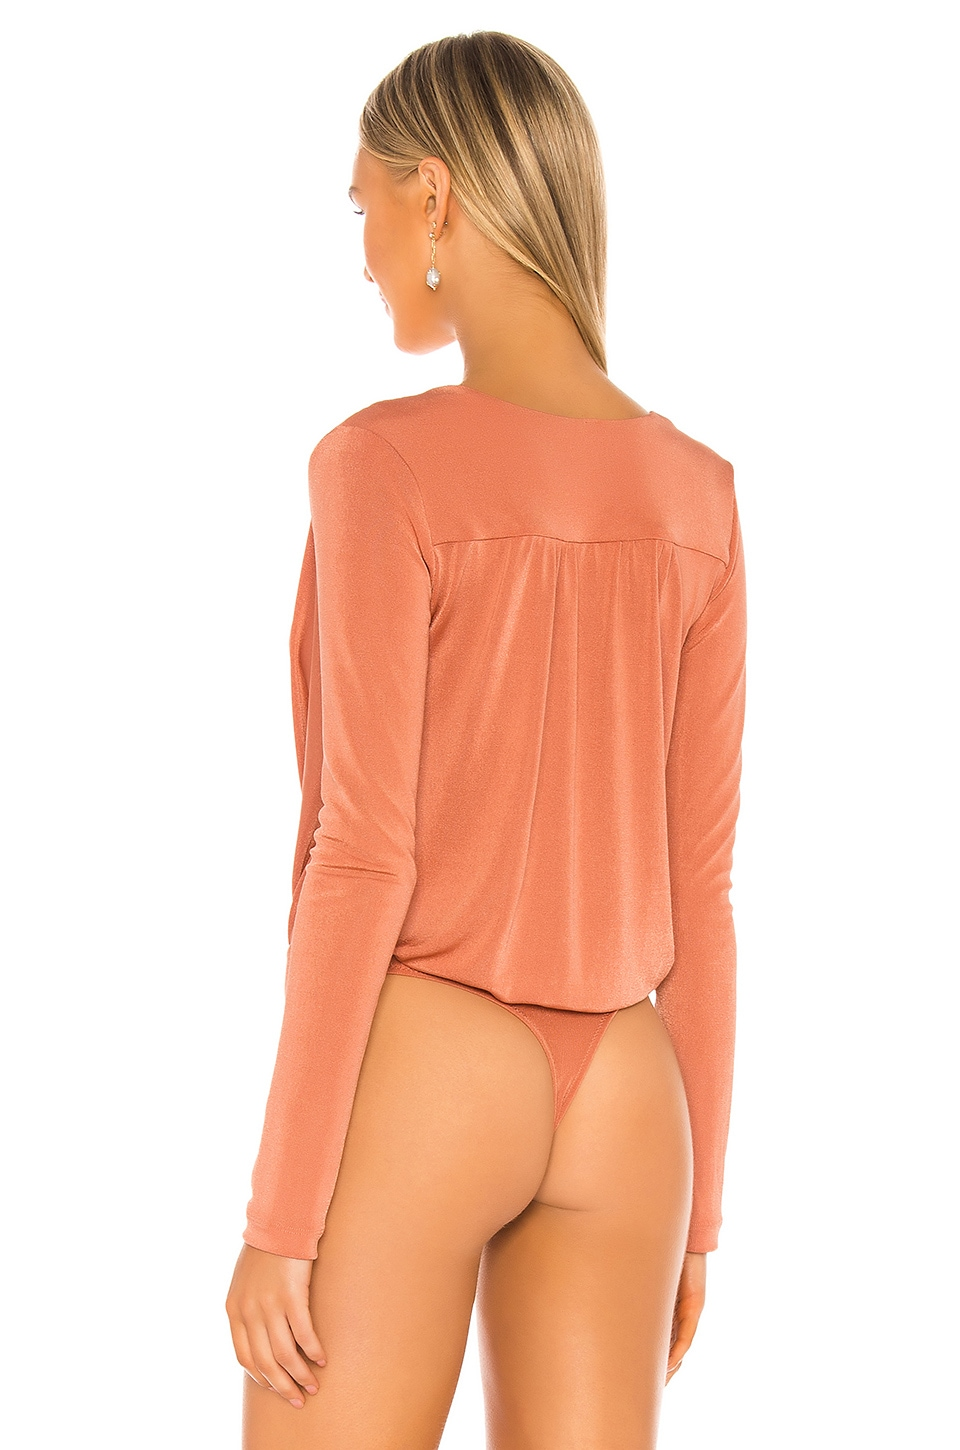 Turnt Bodysuit, view 4, click to view large image.